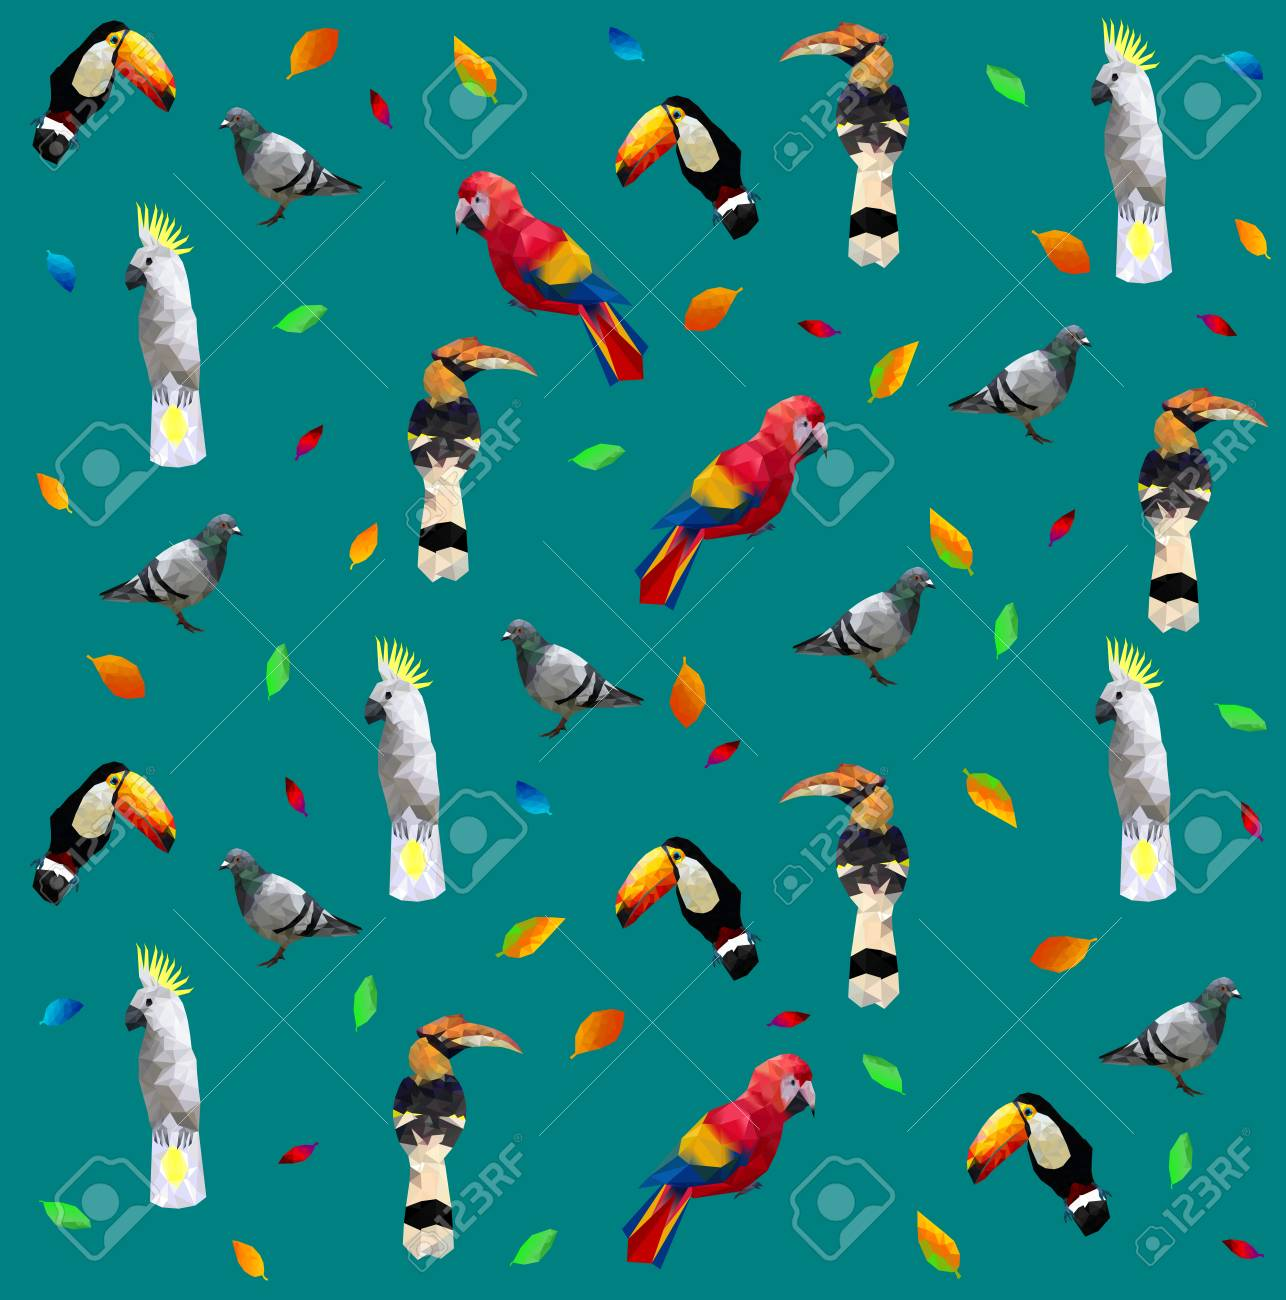 Pattern of Low poly colorful bird(pigeon,hornbills,parrot,toucan,cockatoo)